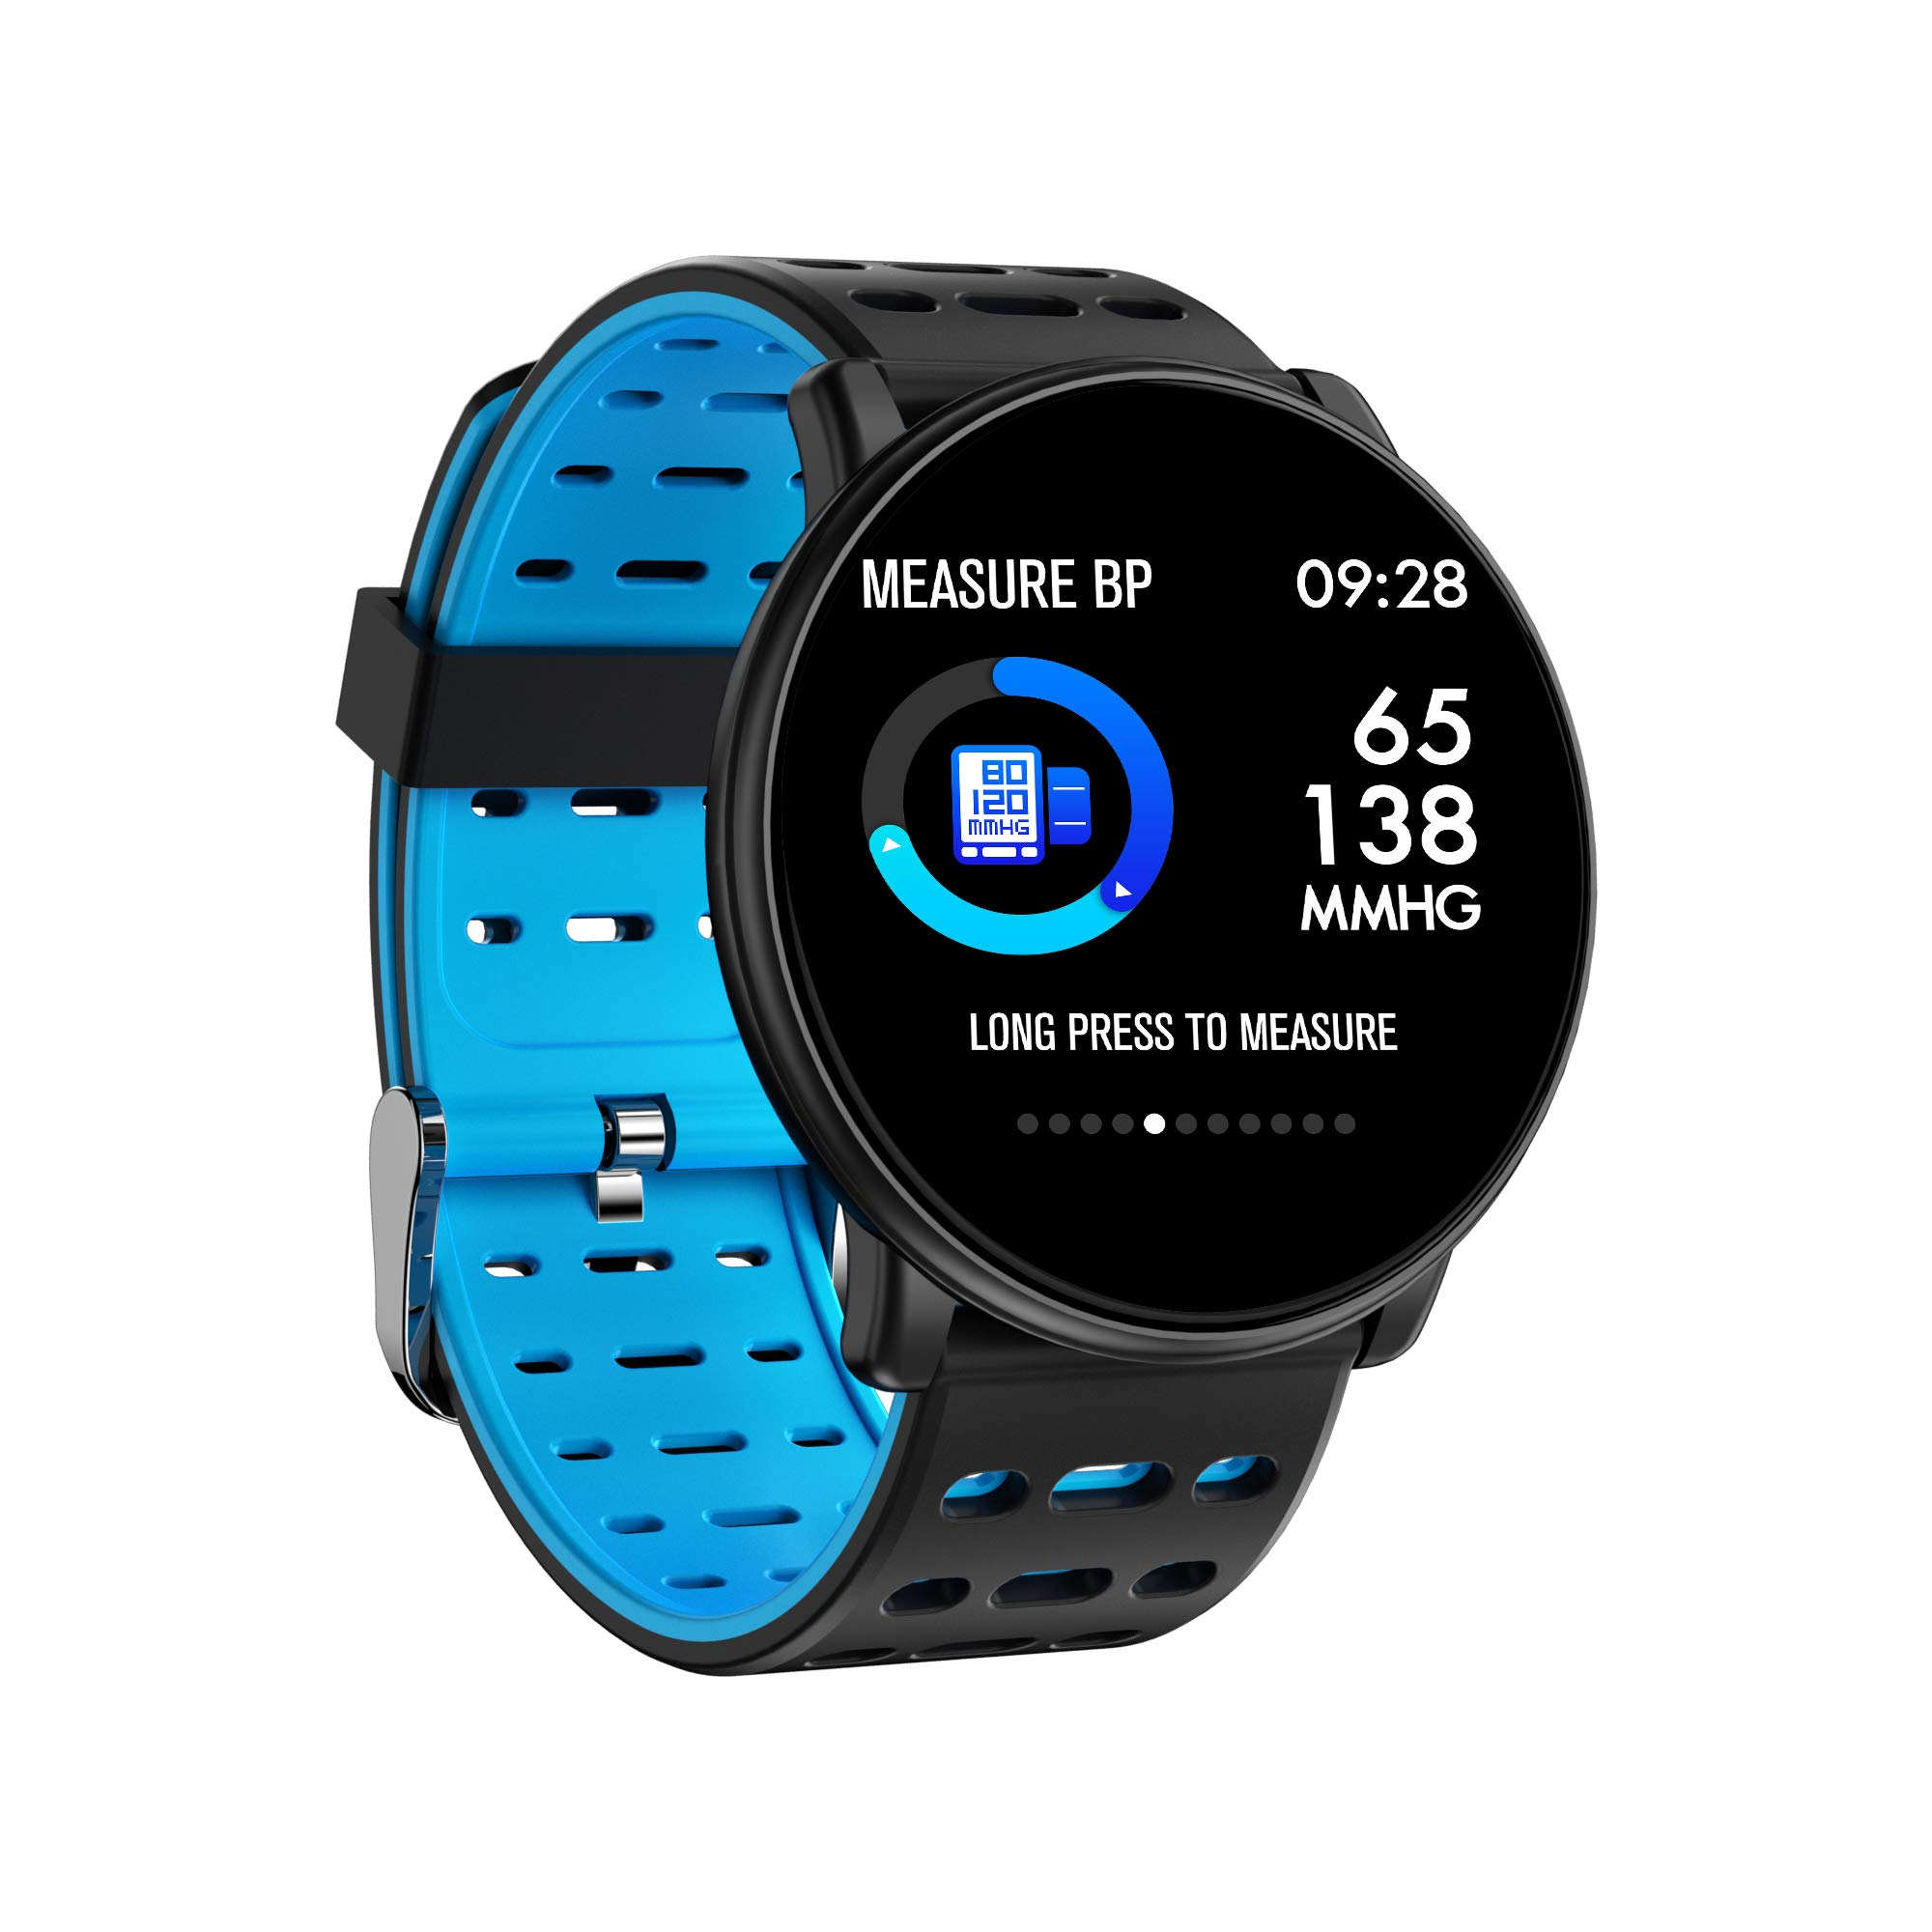 Byoung Smart Bracelet for Women,Bluetooth Fitness Tracker Color Screen with All-Day Heart Rate Tracking Activity Tracker Sleep Monitoring Waterproof Calorie Counter Pedometer for iOS Andriod - Blue